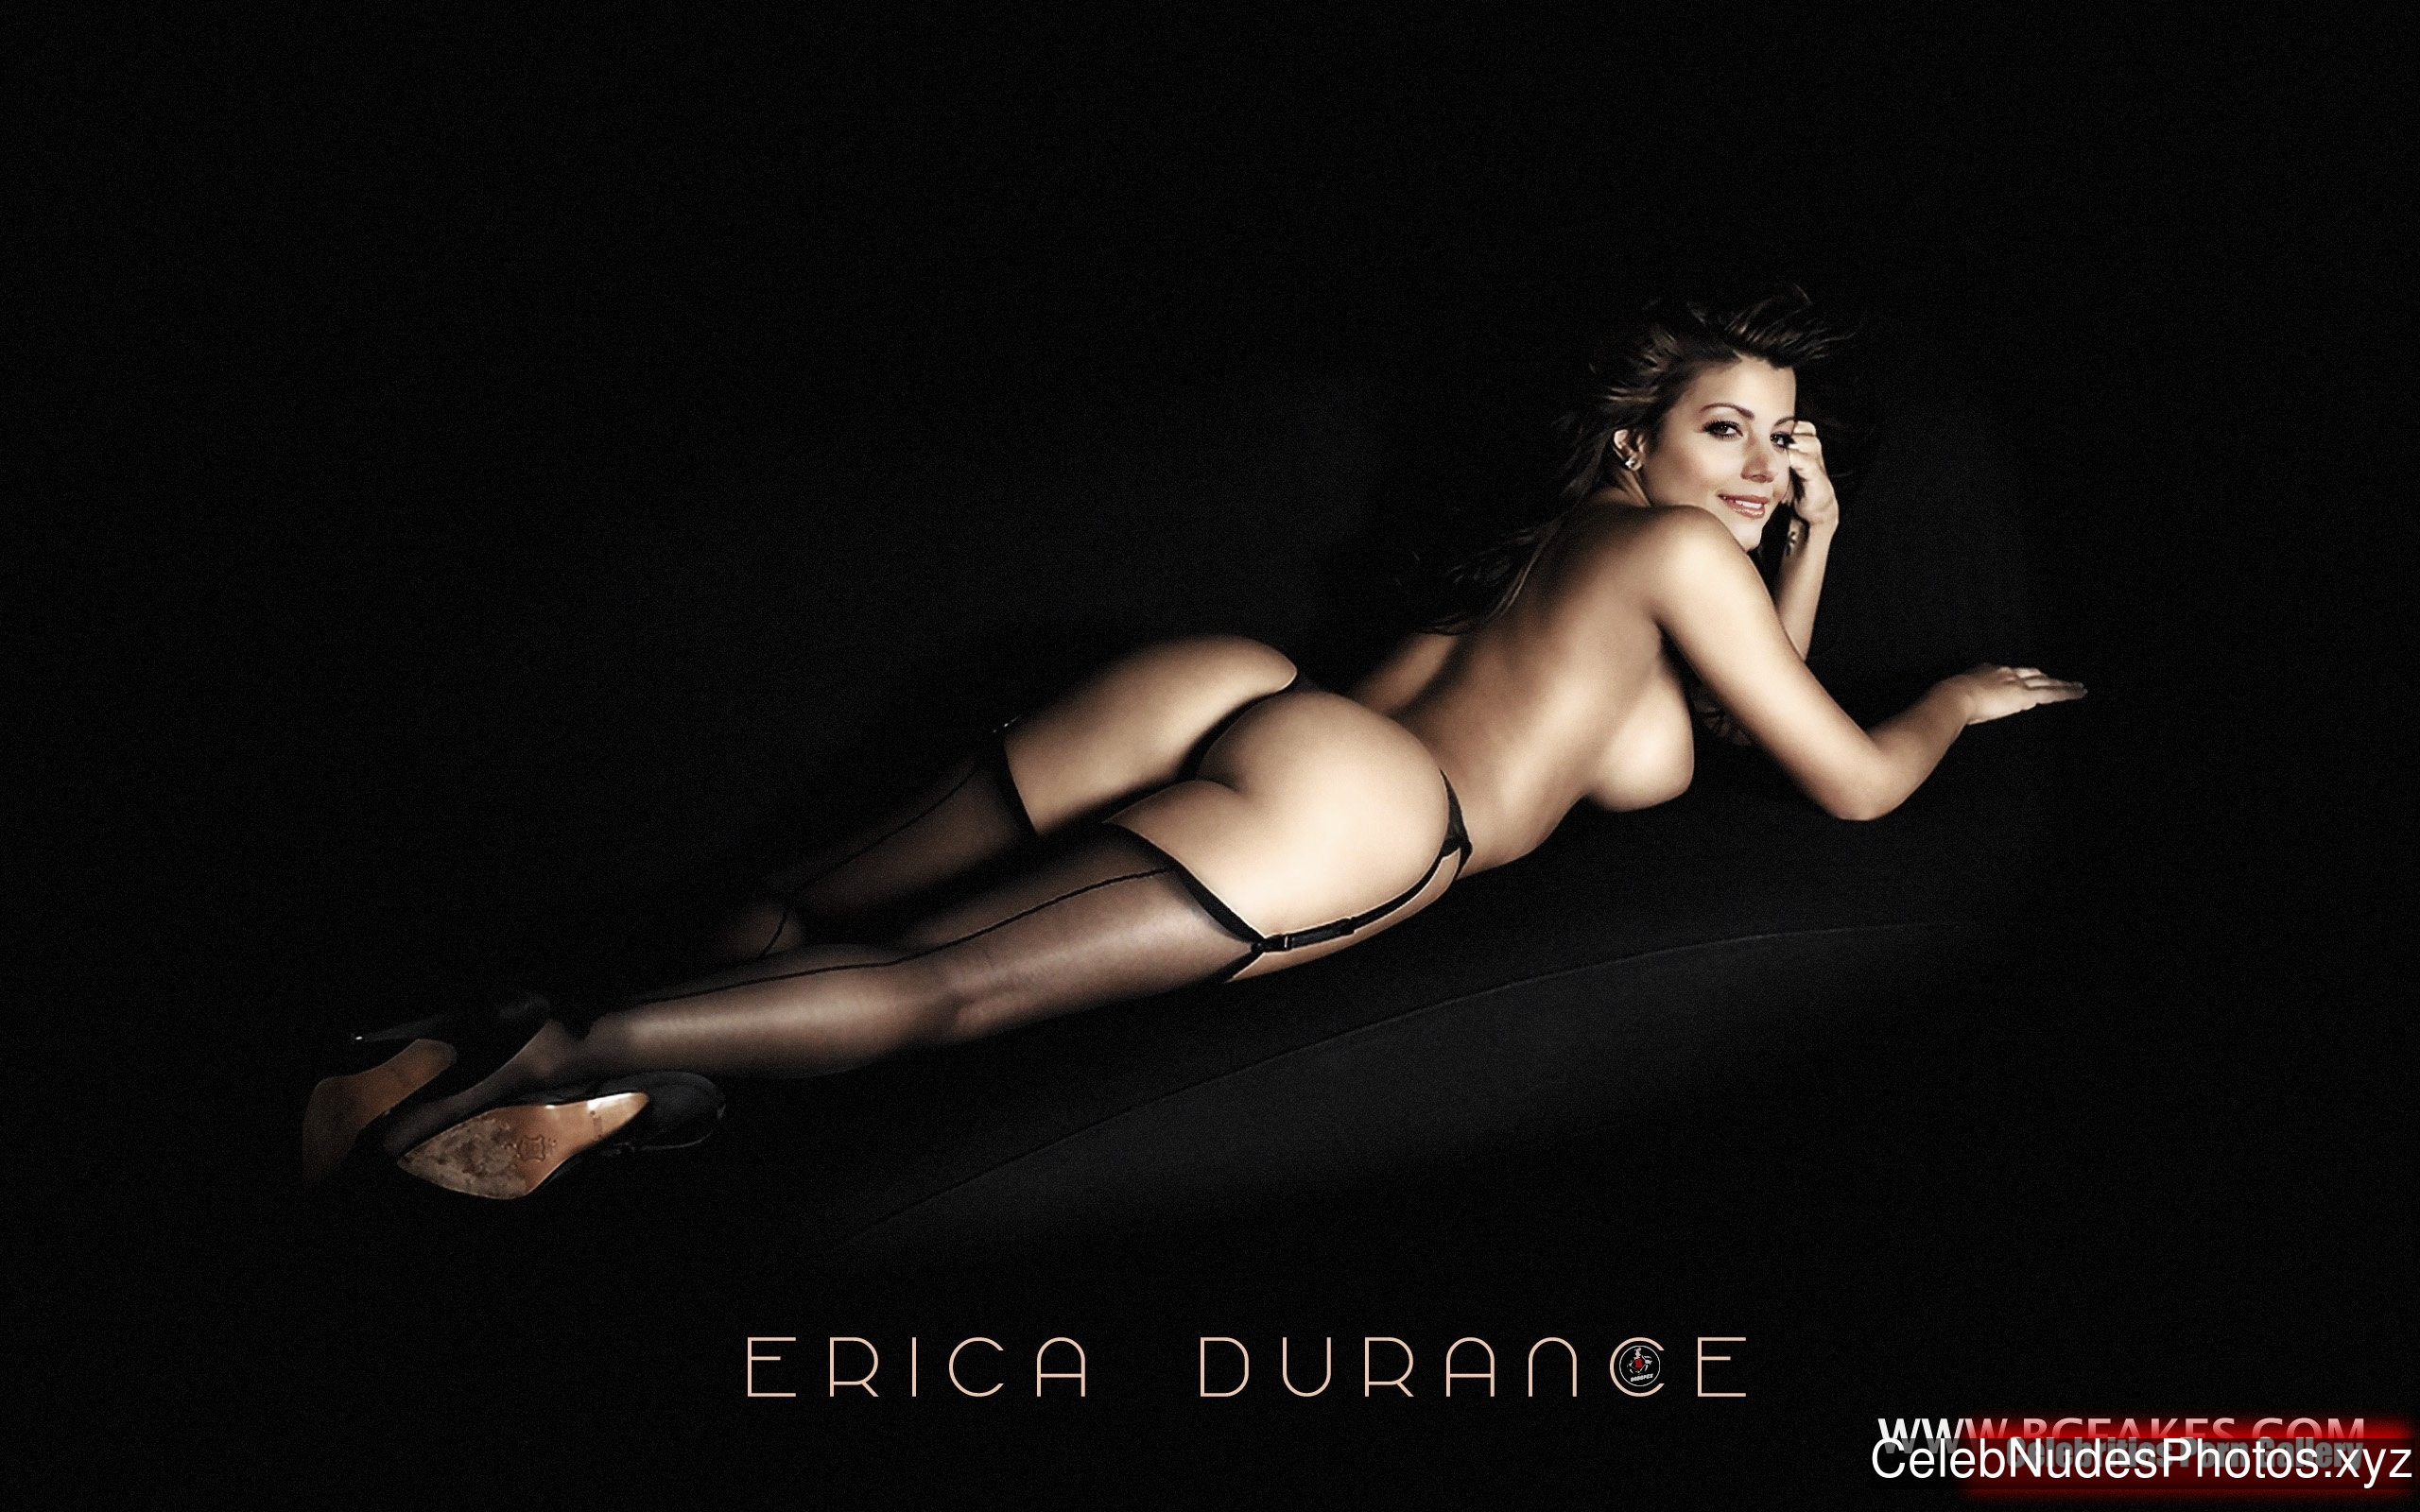 Erica Durance Naked Celebrity Pic sexy 5